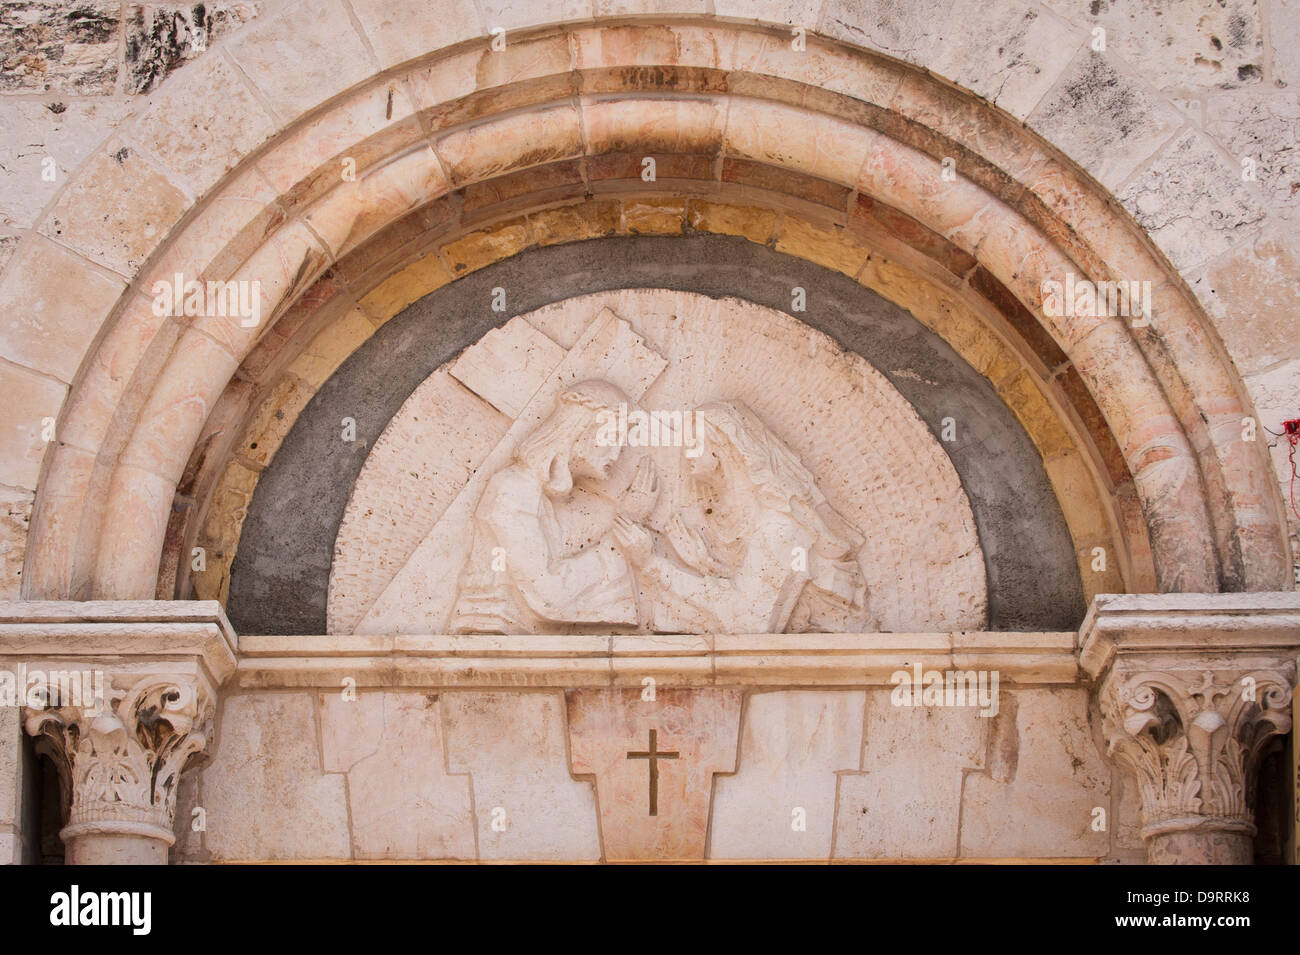 Israel Old City Jerusalem Via Dolorosa Station of the Cross 4 four fourth  Jesus meets mother Mary Armenian Church - Stock Image